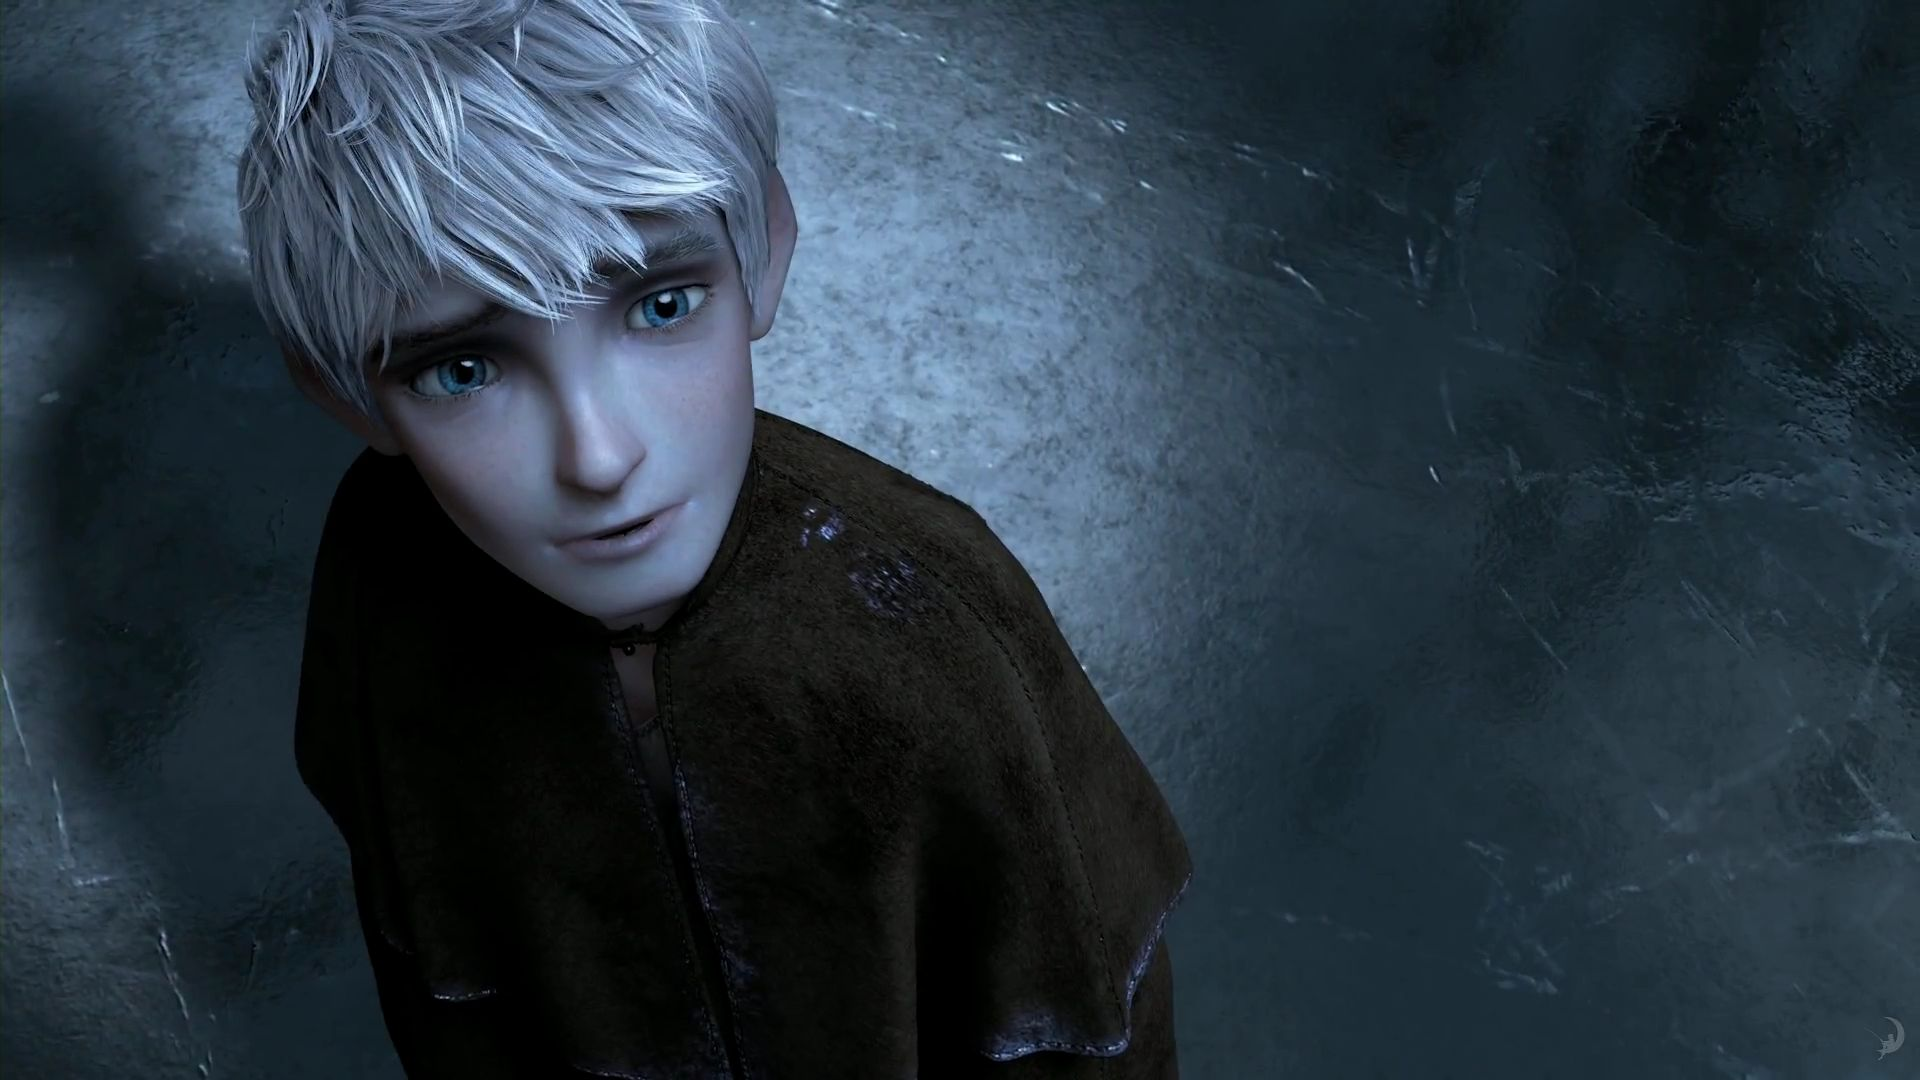 Movie pictures jack frost rise of the guardians wallpapers rise movie pictures jack frost rise of the guardians wallpapers altavistaventures Choice Image